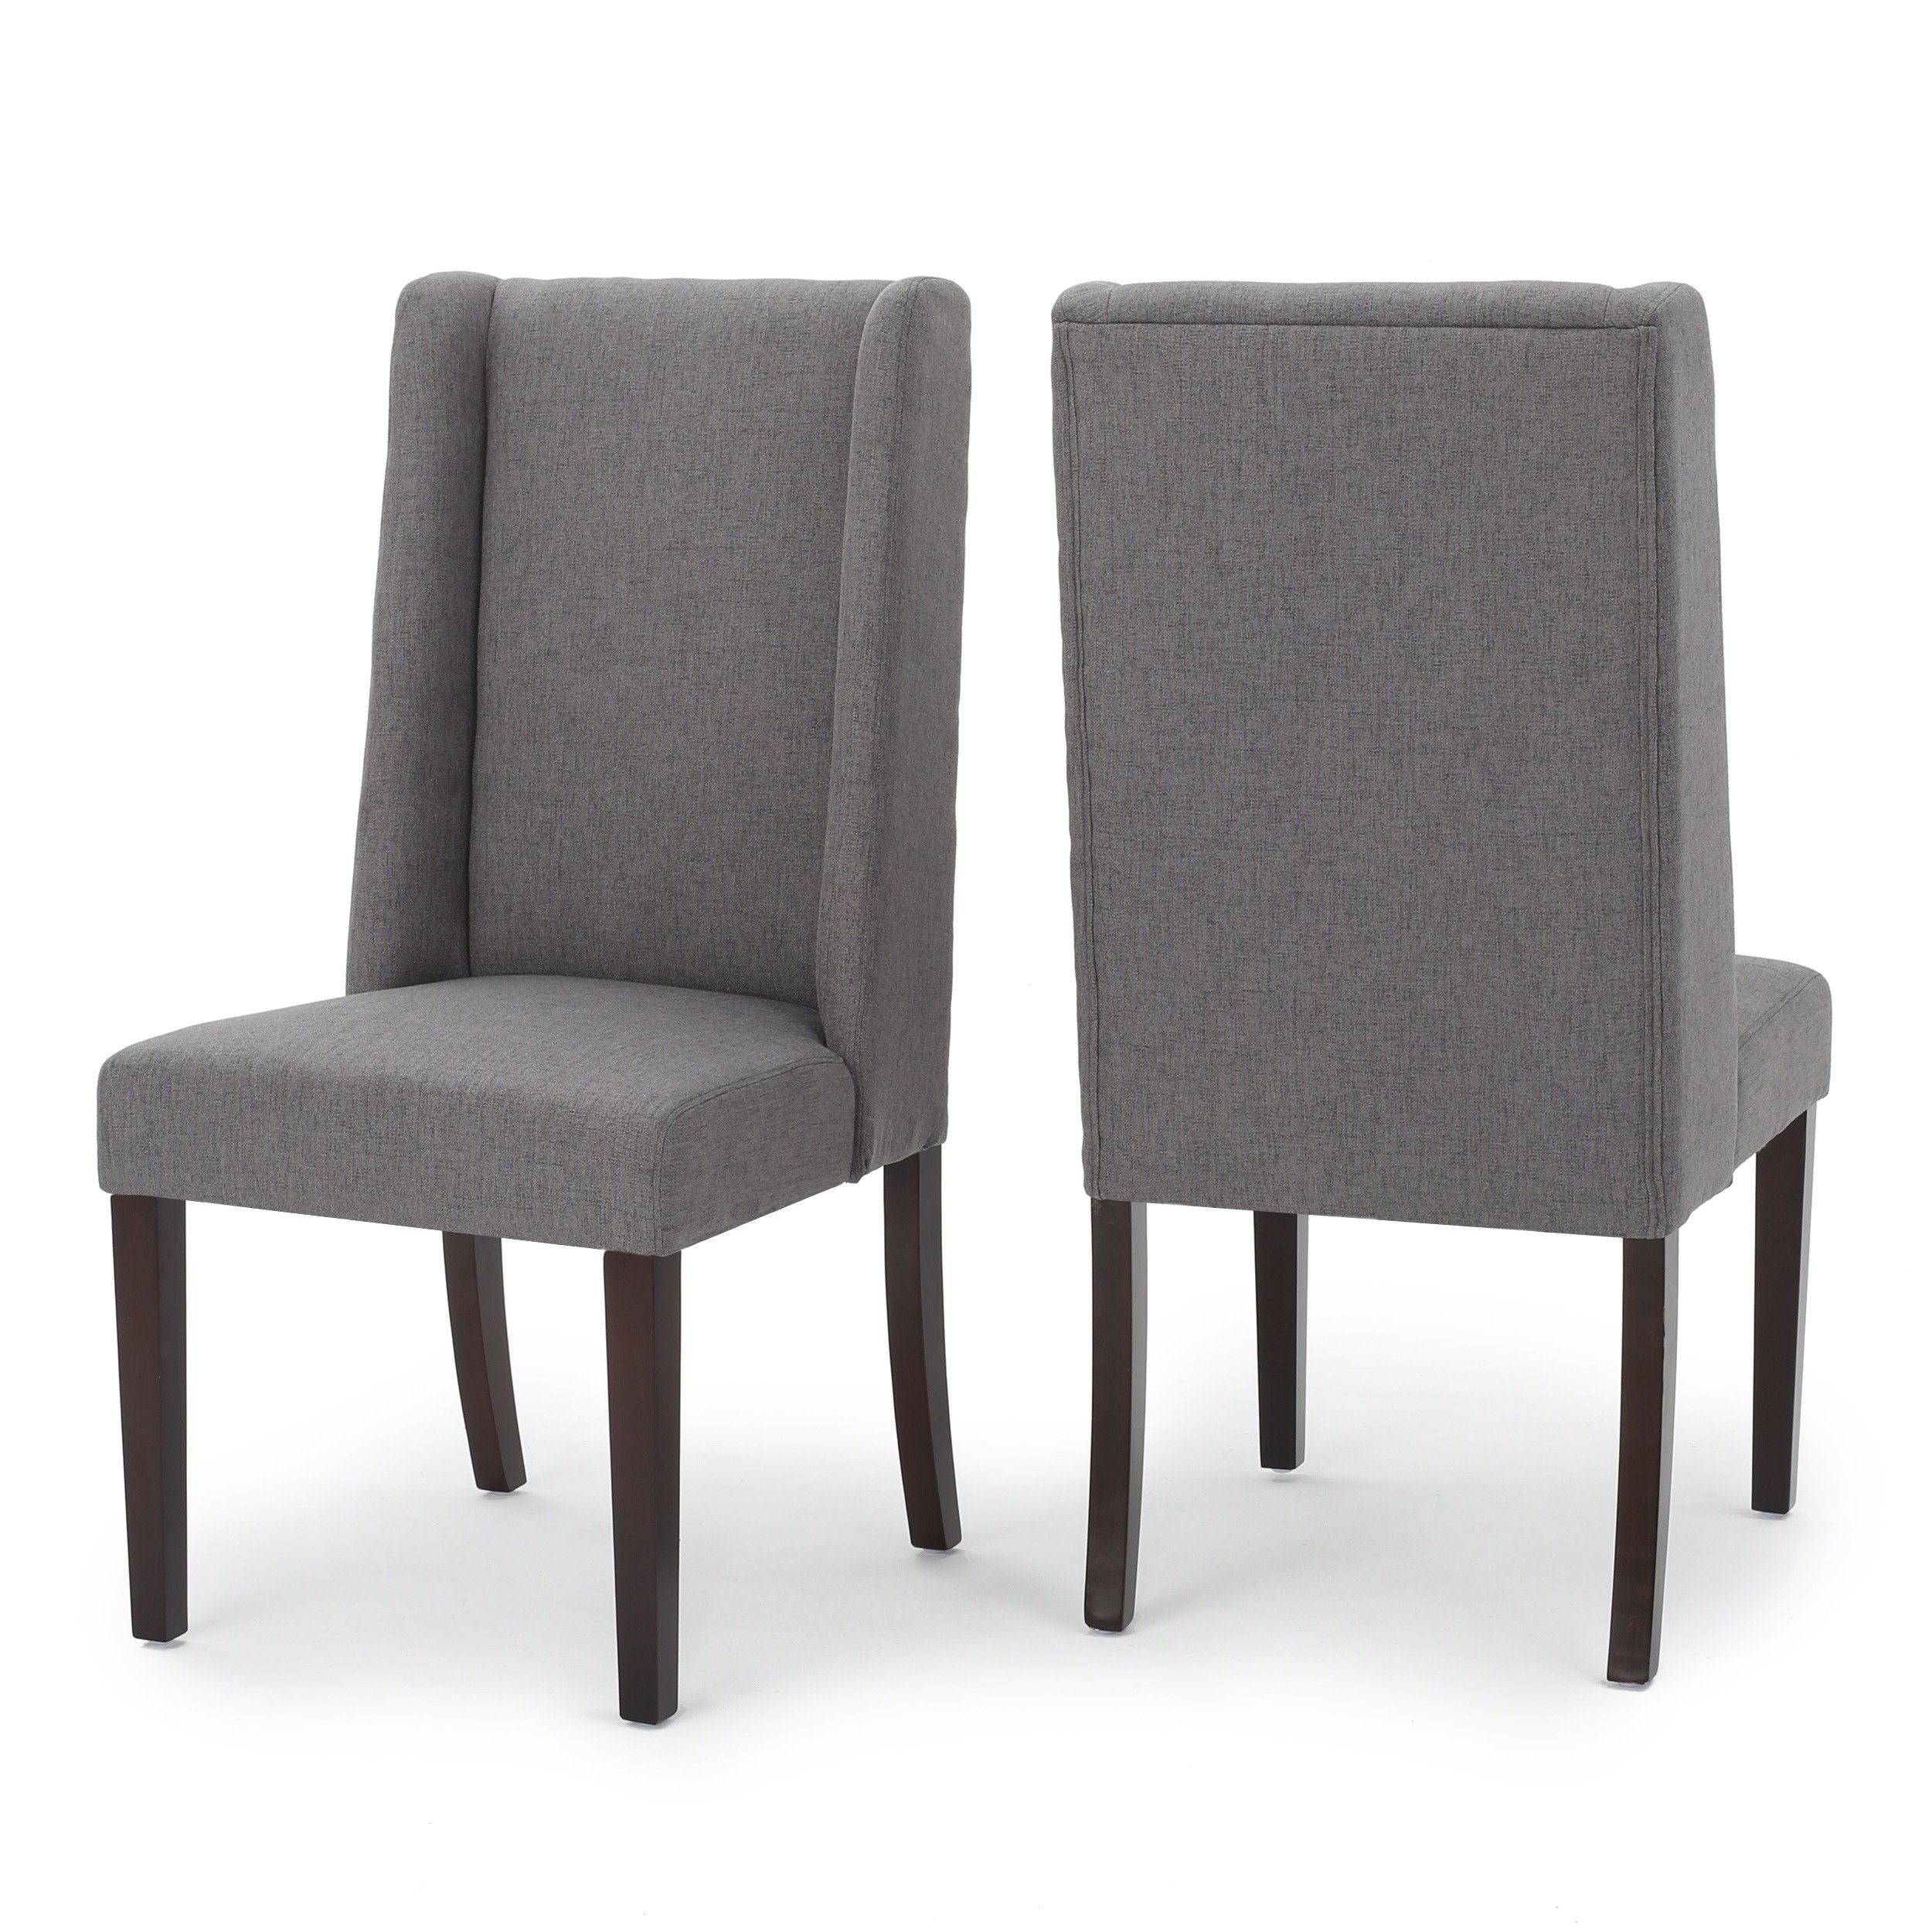 Shop Rory Wing Back Fabric Dining Chair (Set Of 2)Christopher Inside Rory Sofa Chairs (Image 20 of 20)